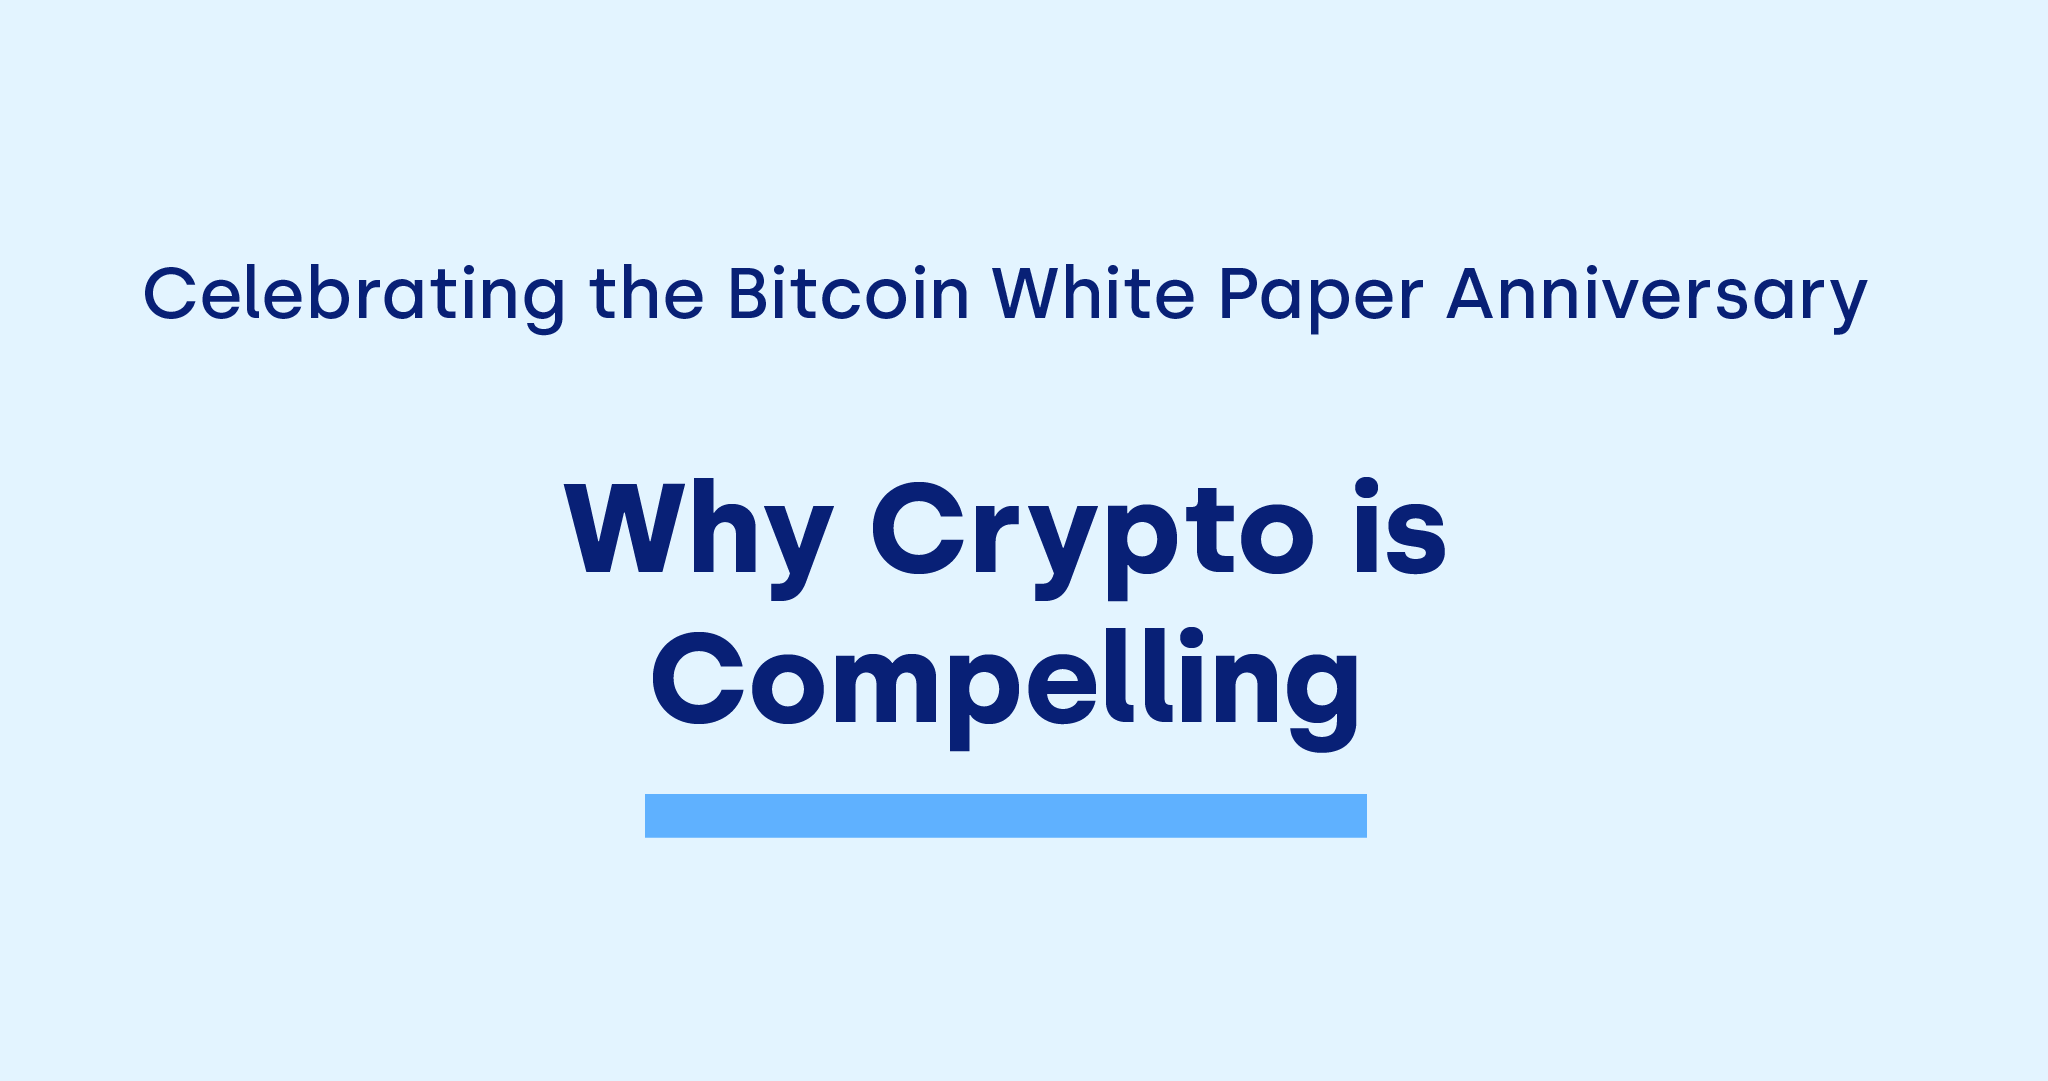 OKCoin celebrates the Bitcoin white paper anniversary